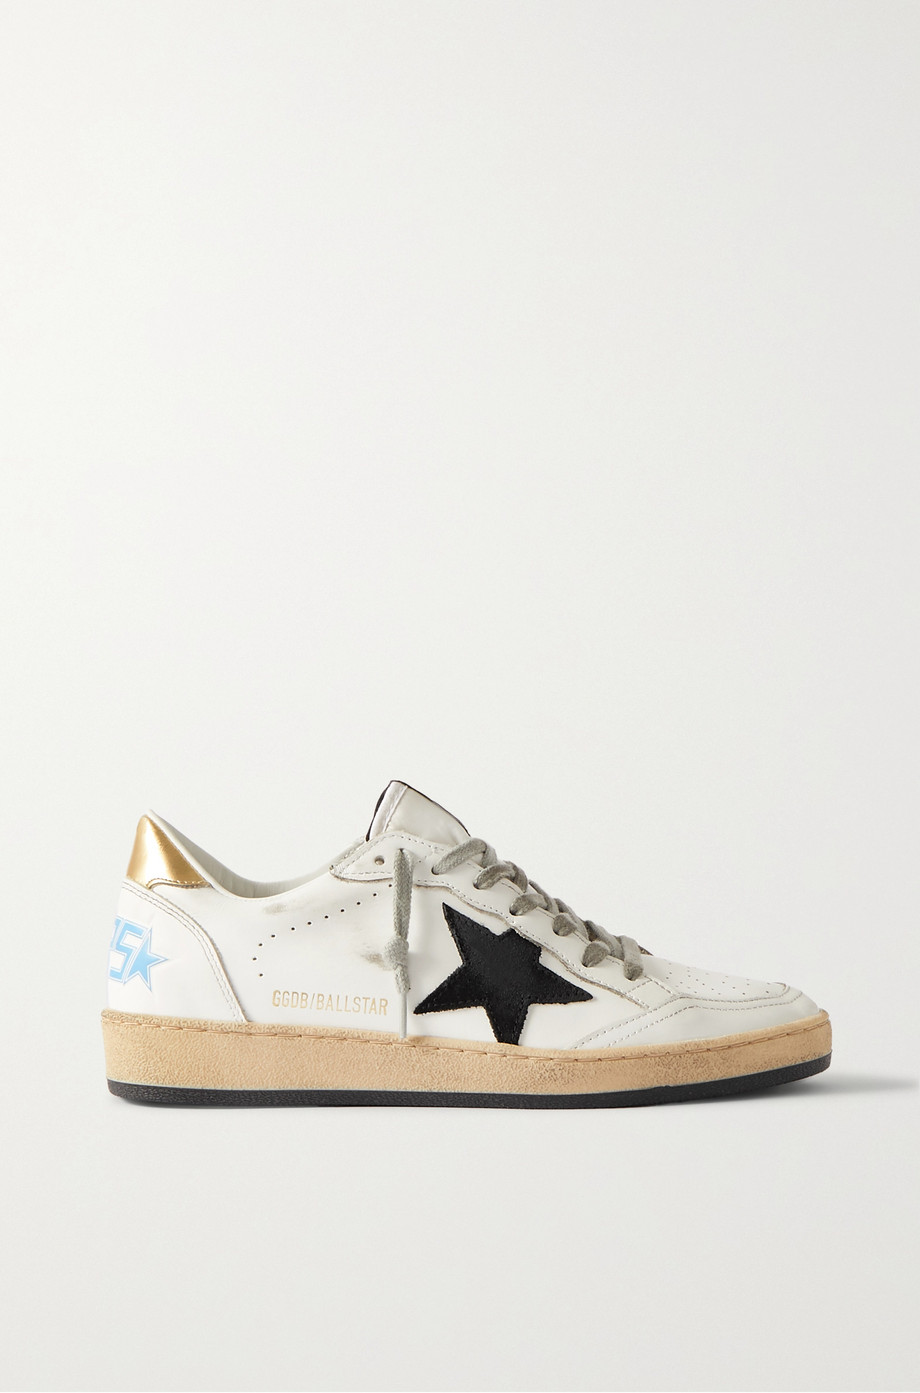 GOLDEN GOOSE Ball Star distressed suede-trimmed leather sneakers